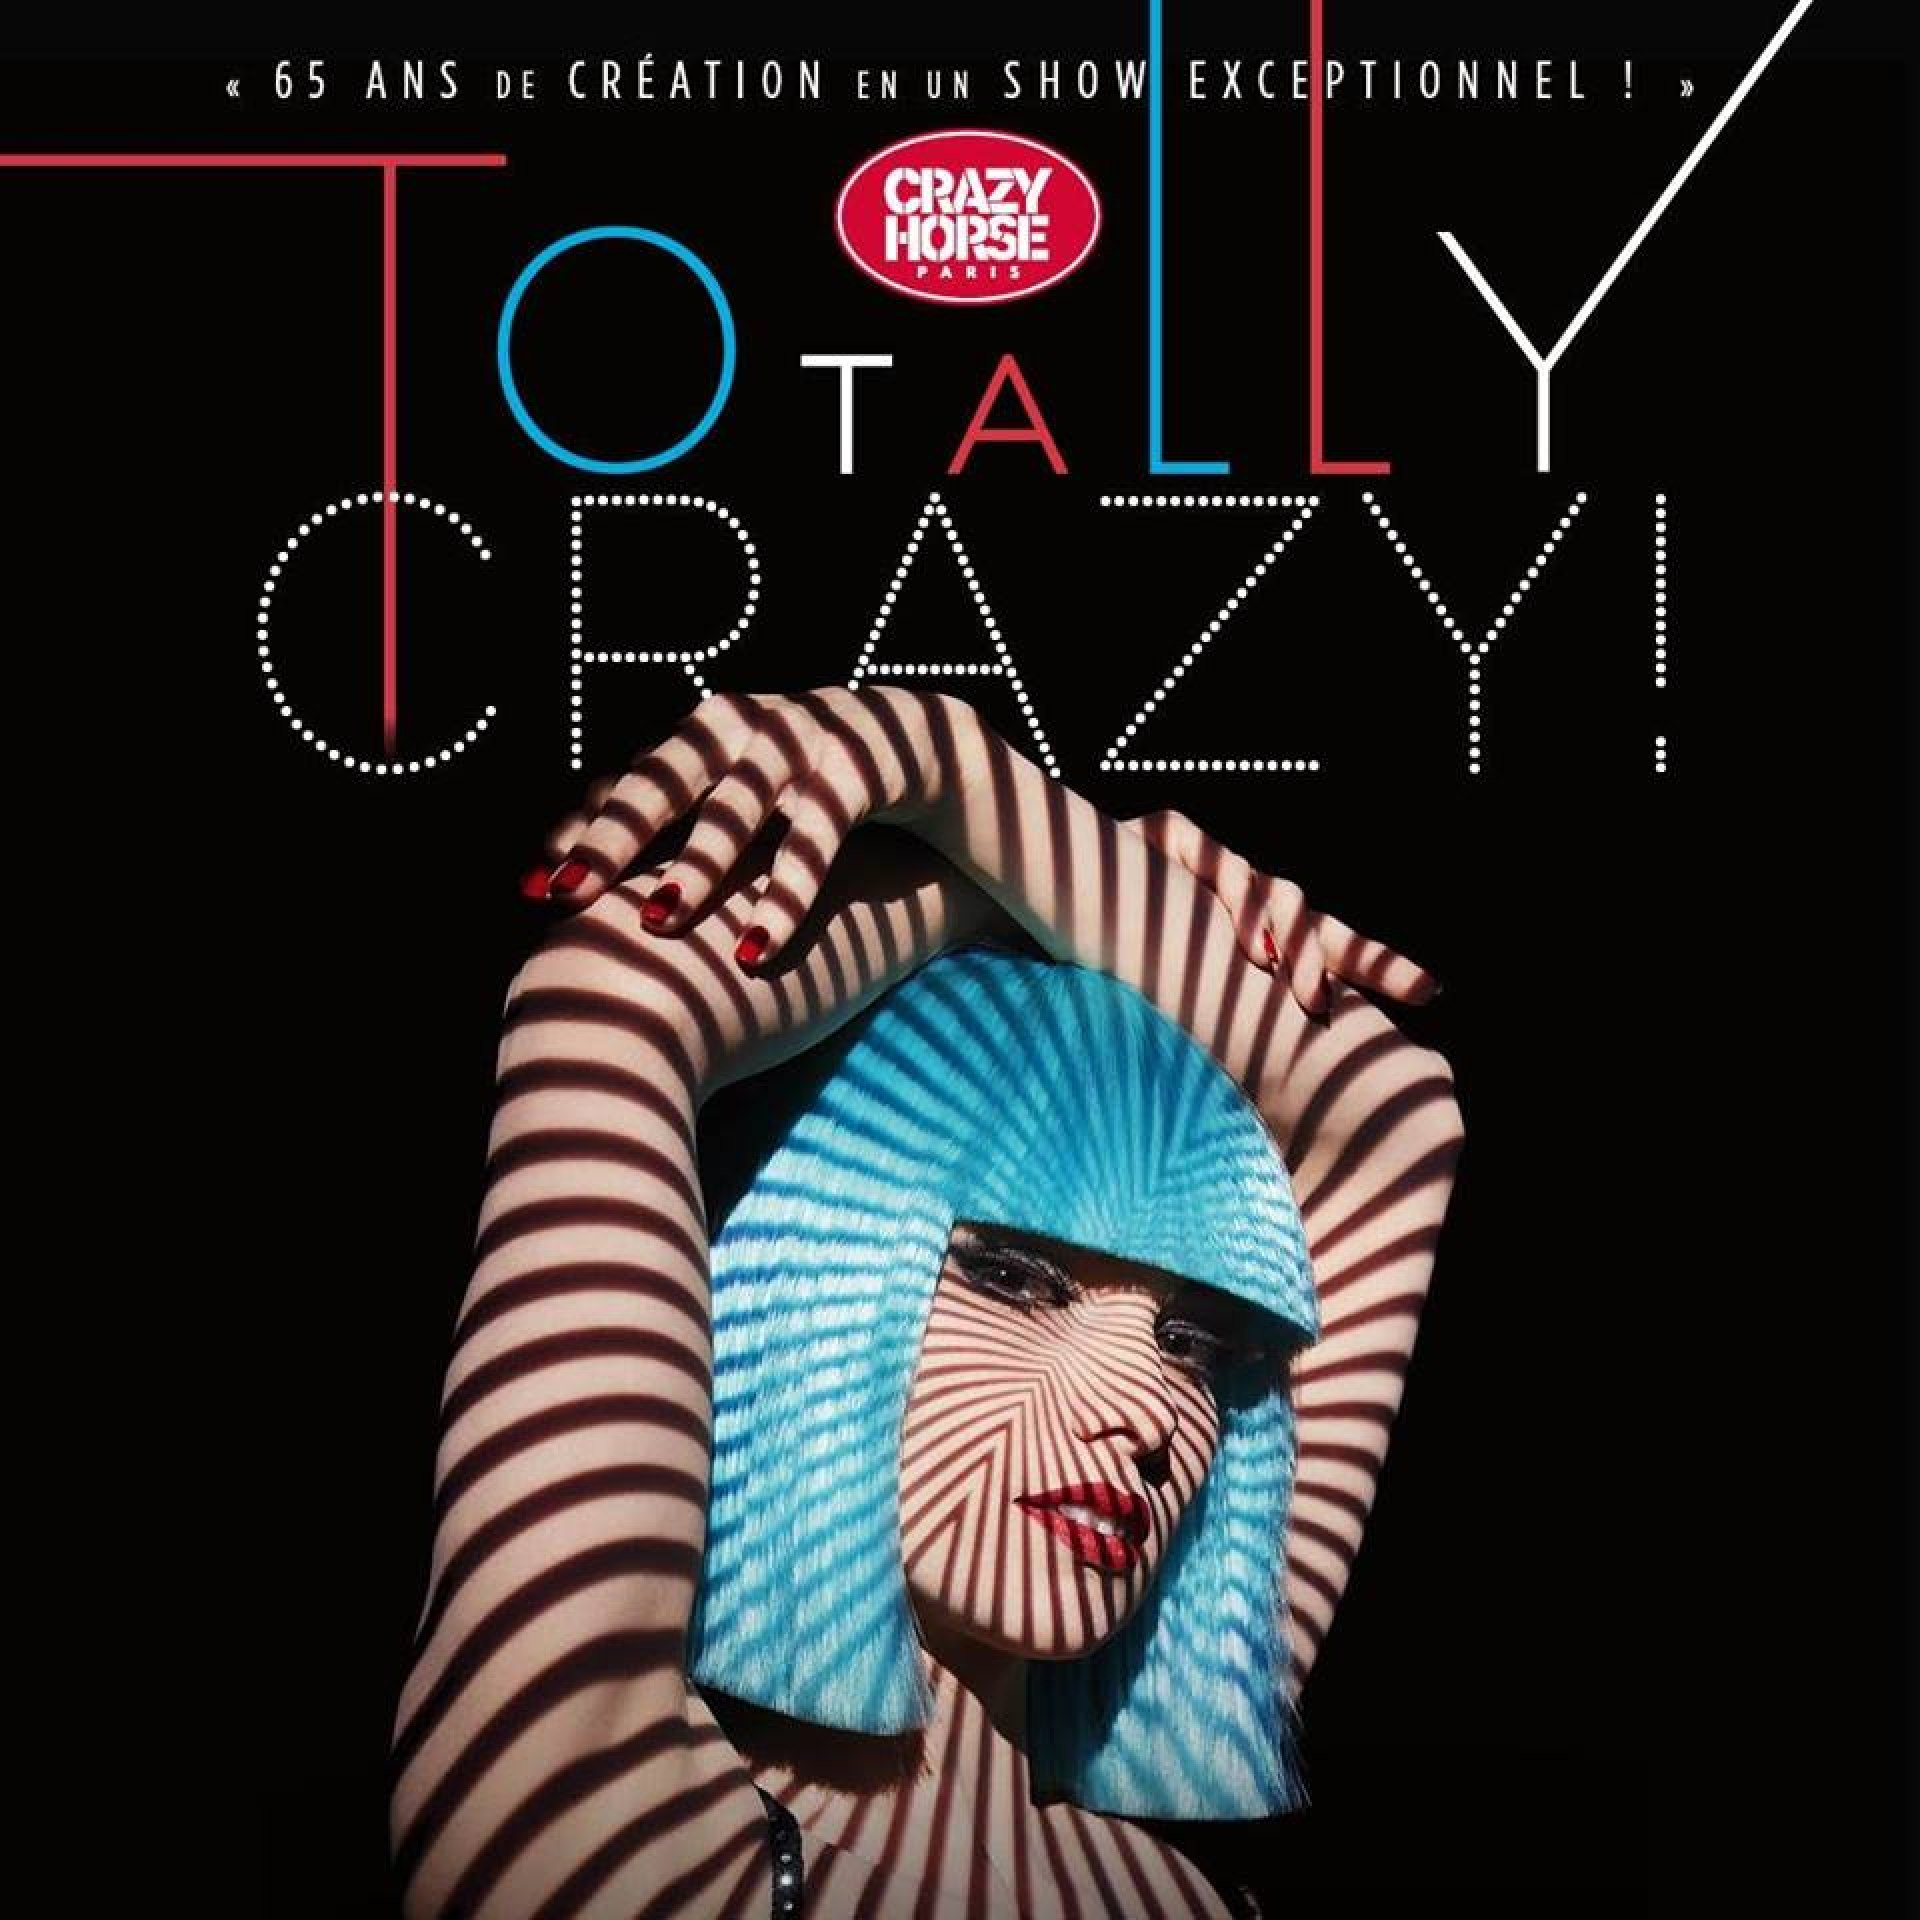 The Crazy Horse Cabaret Paris